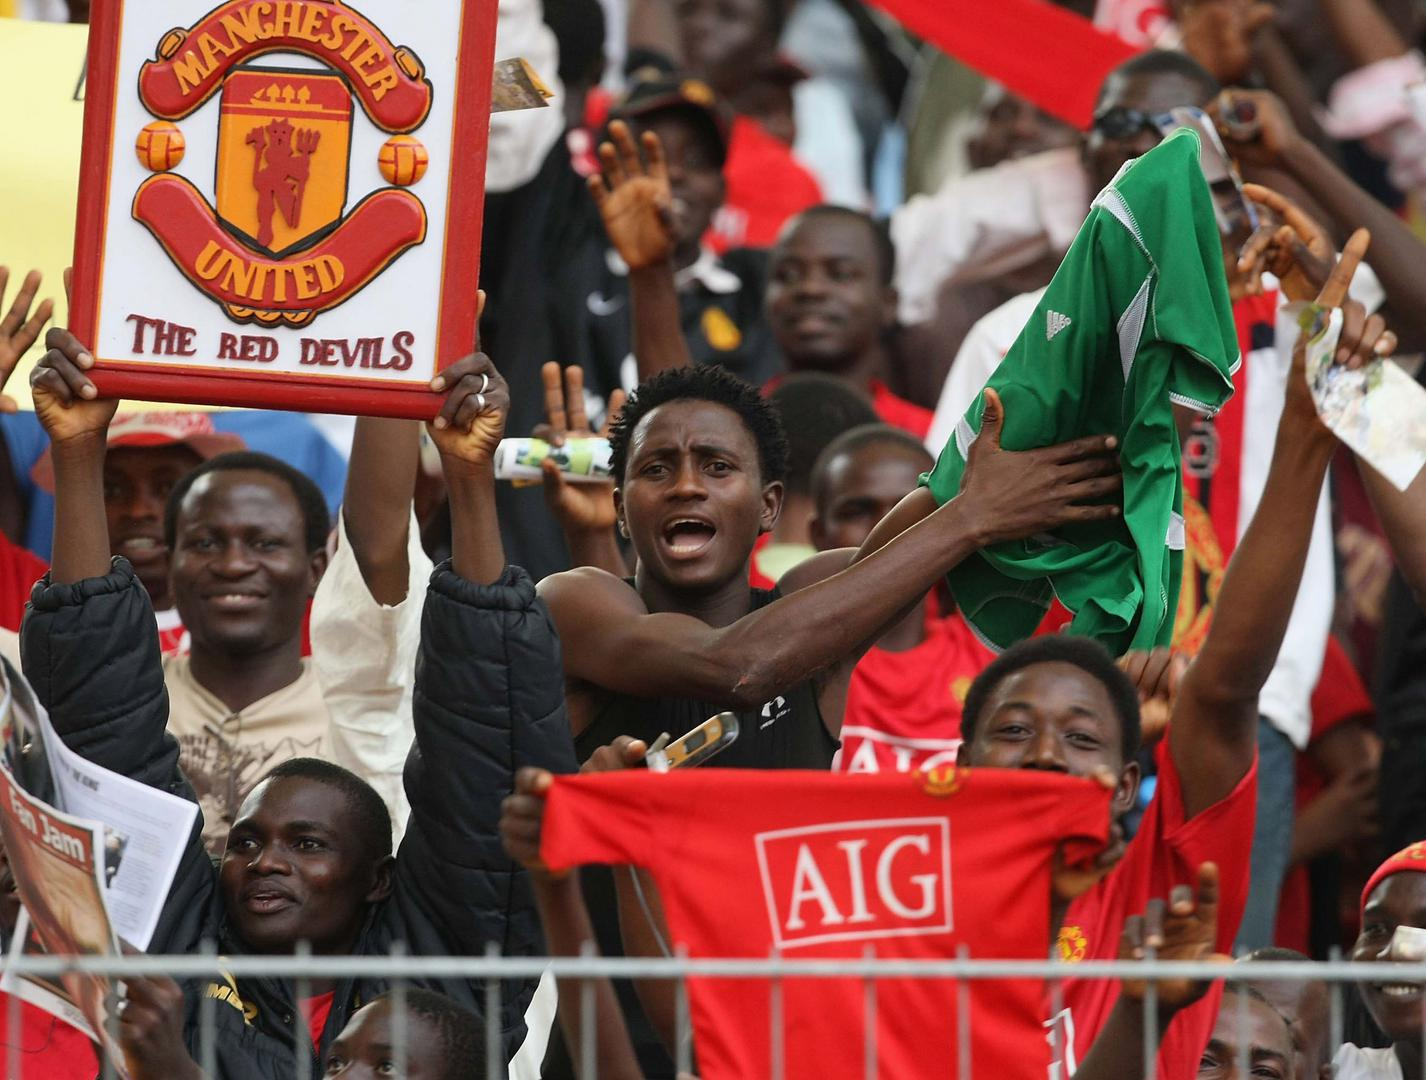 United fans in Nigeria in 2008.